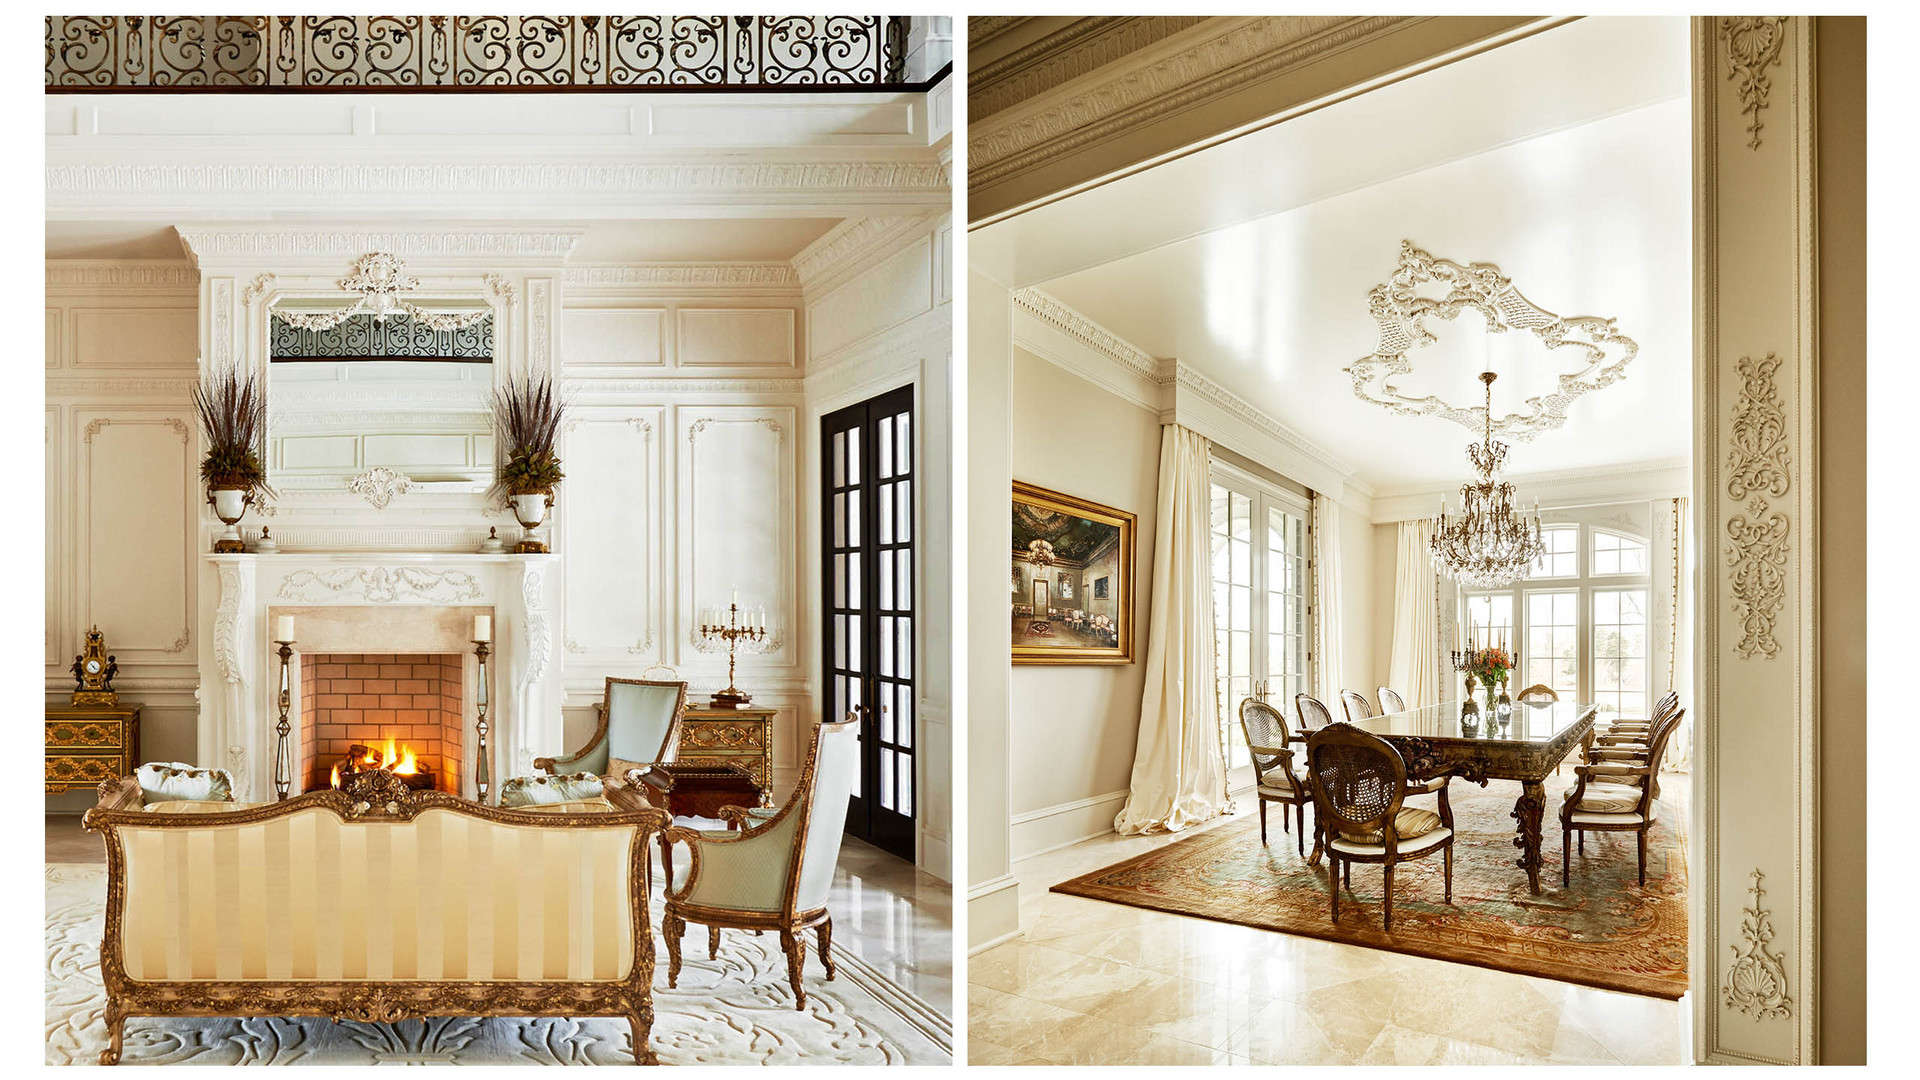 Architects Builders Dustin Peck Photography Architectural Interior Design Lifestyle